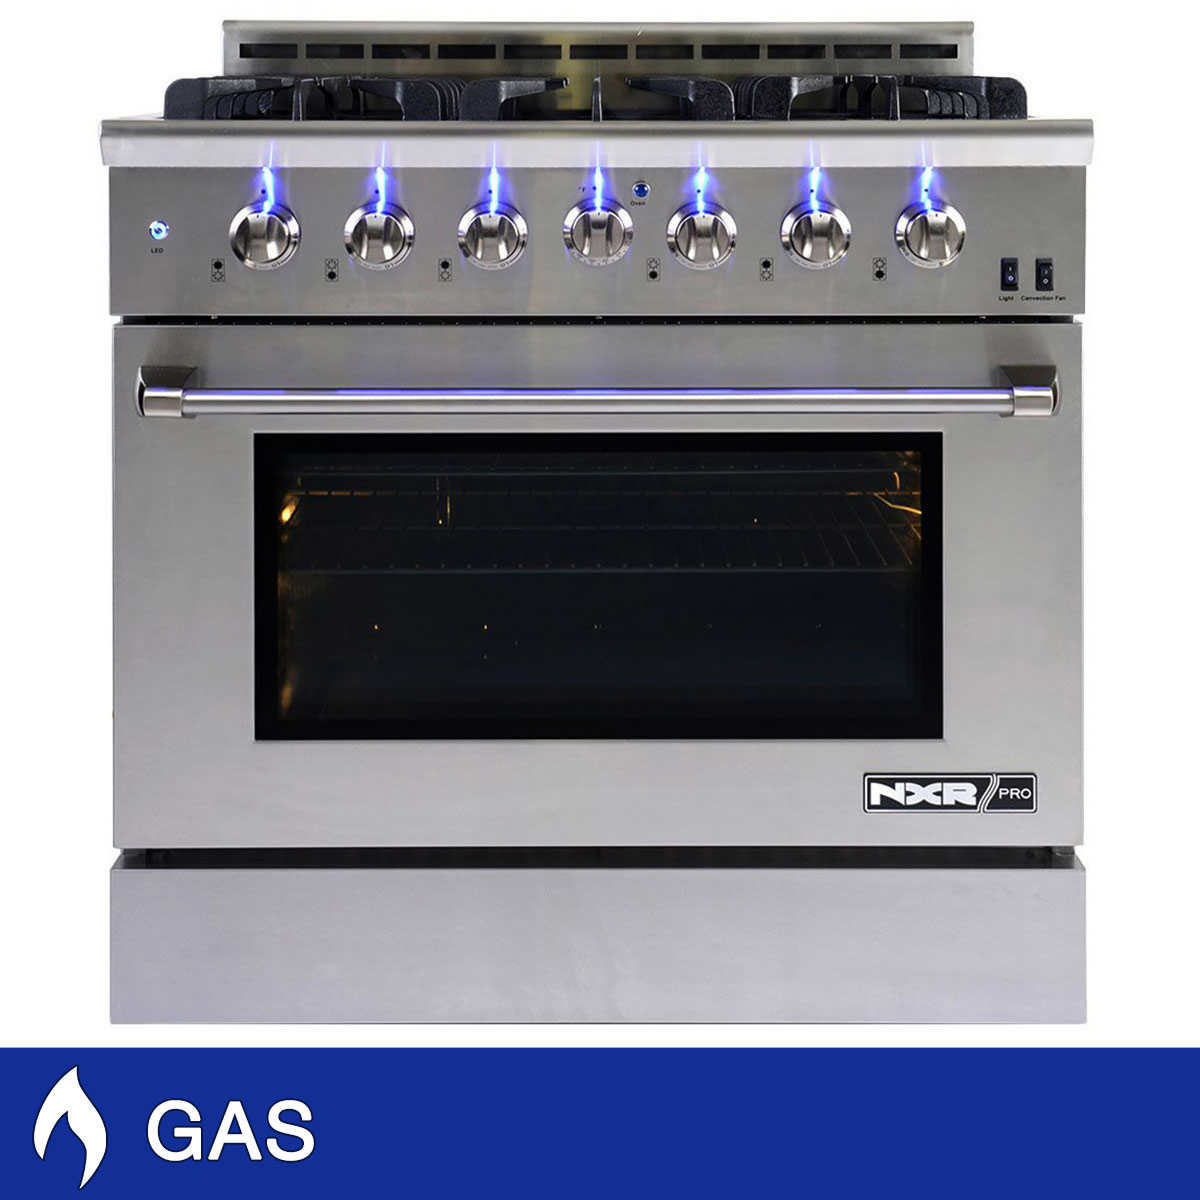 Kitchenaid 36 Inch Gas Range Stainless Steel Tcworks Org